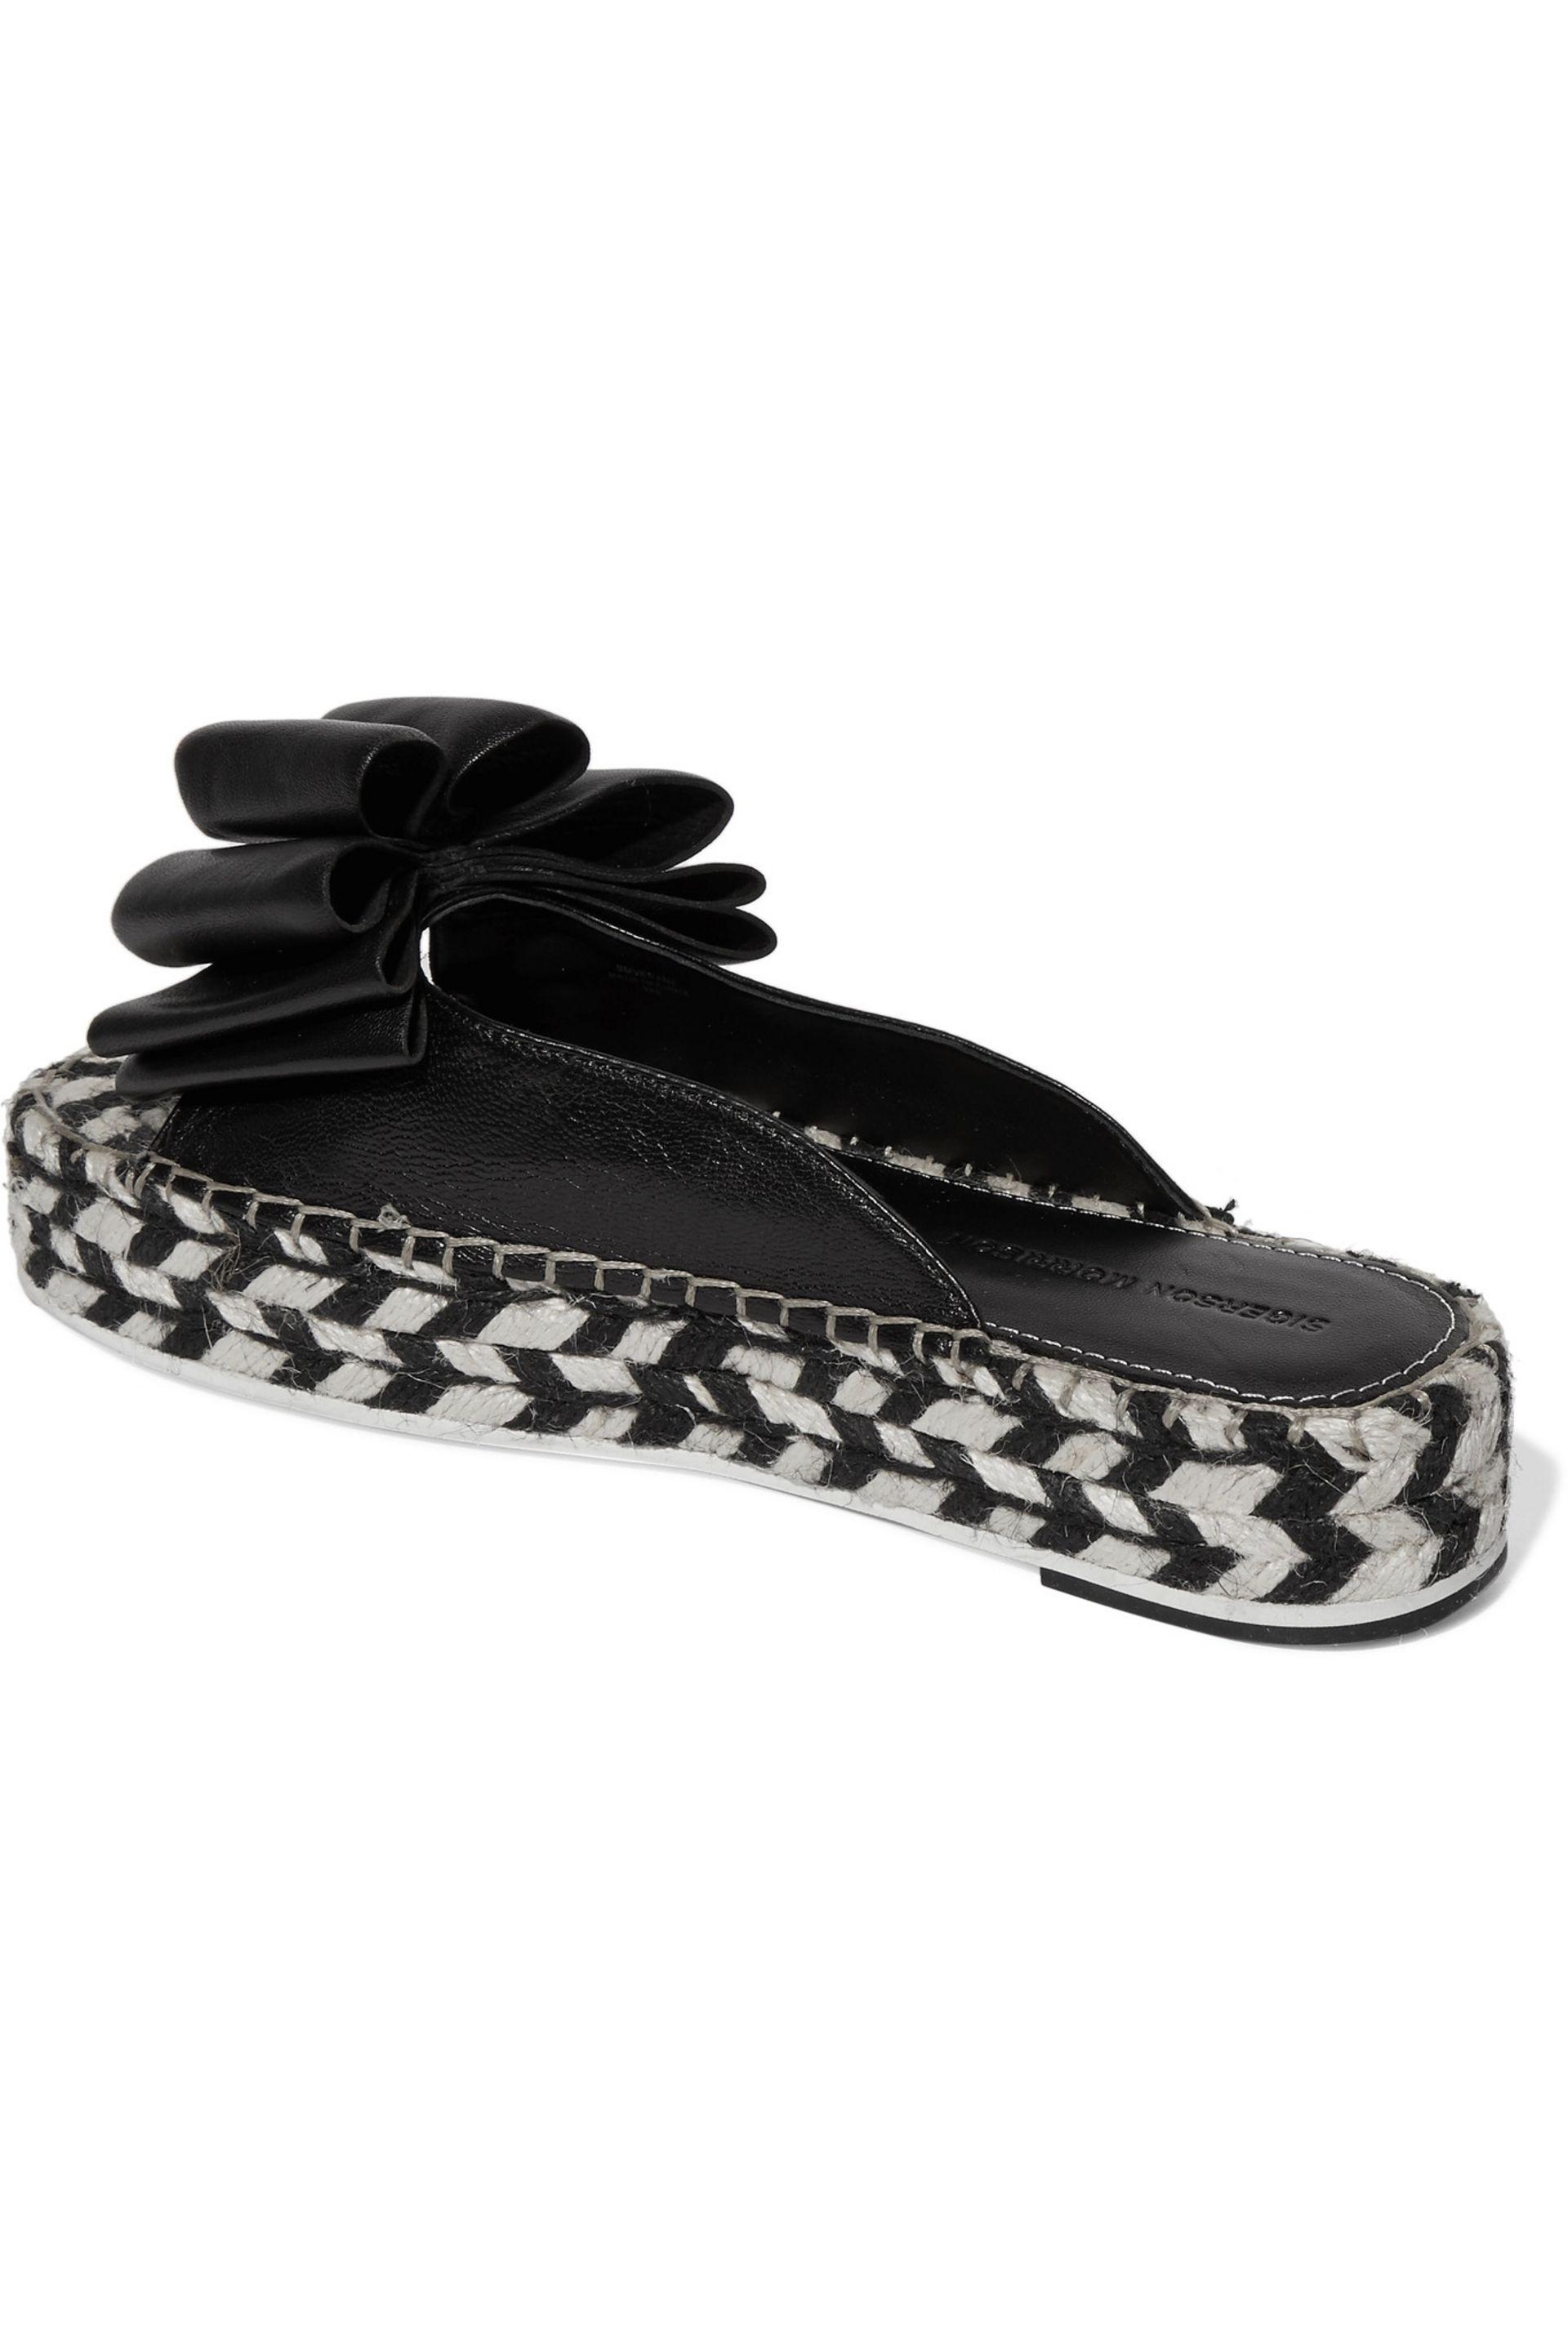 Gallery. Previously sold at: THE OUTNET.COM · Women's Leather Espadrilles